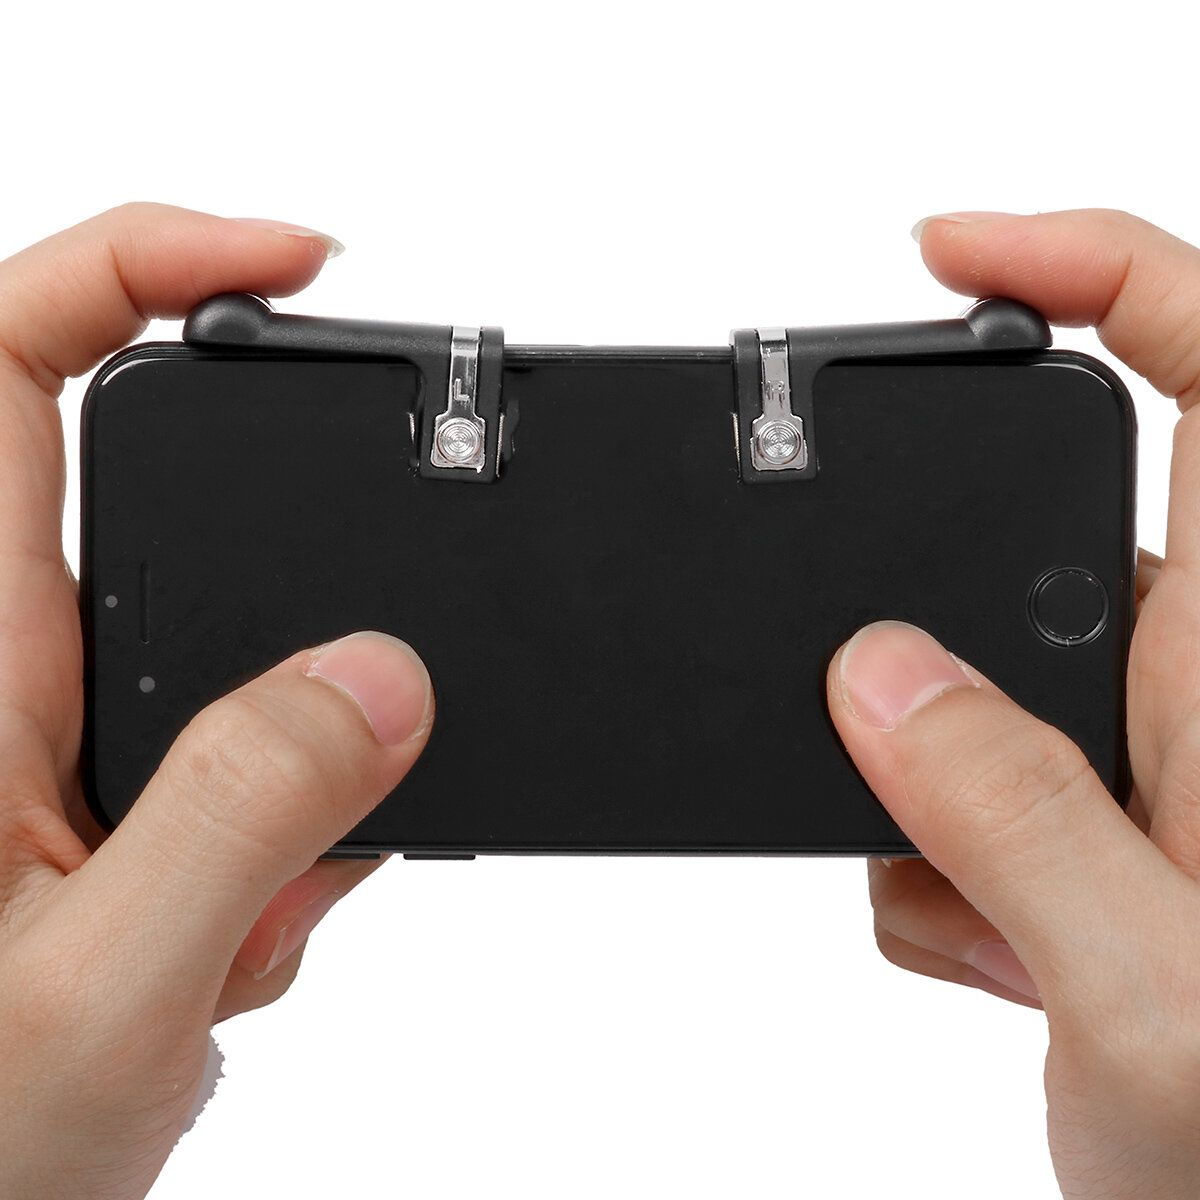 HNW US$4.16 Game Controller Shooter Mobile Gaming Aiming Fire Trigger Button Handle L1R1 for PUBG Mobile Game